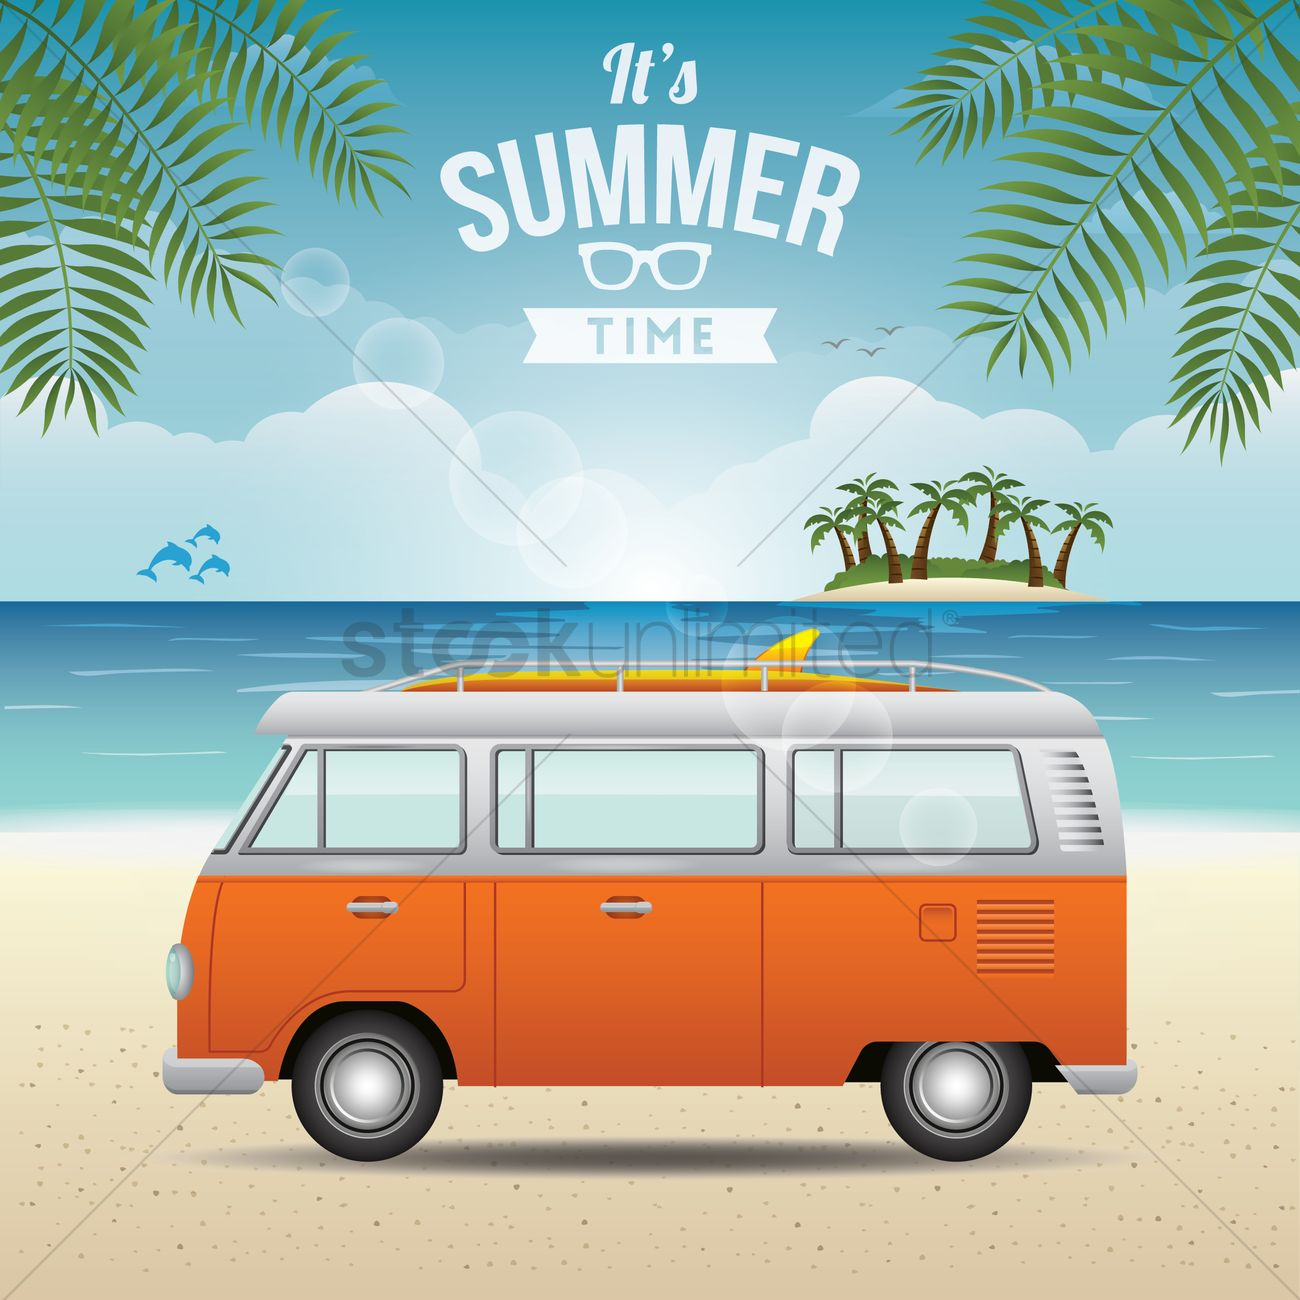 Its Summer Time Wallpaper Vector Image 1825798 Stockunlimited